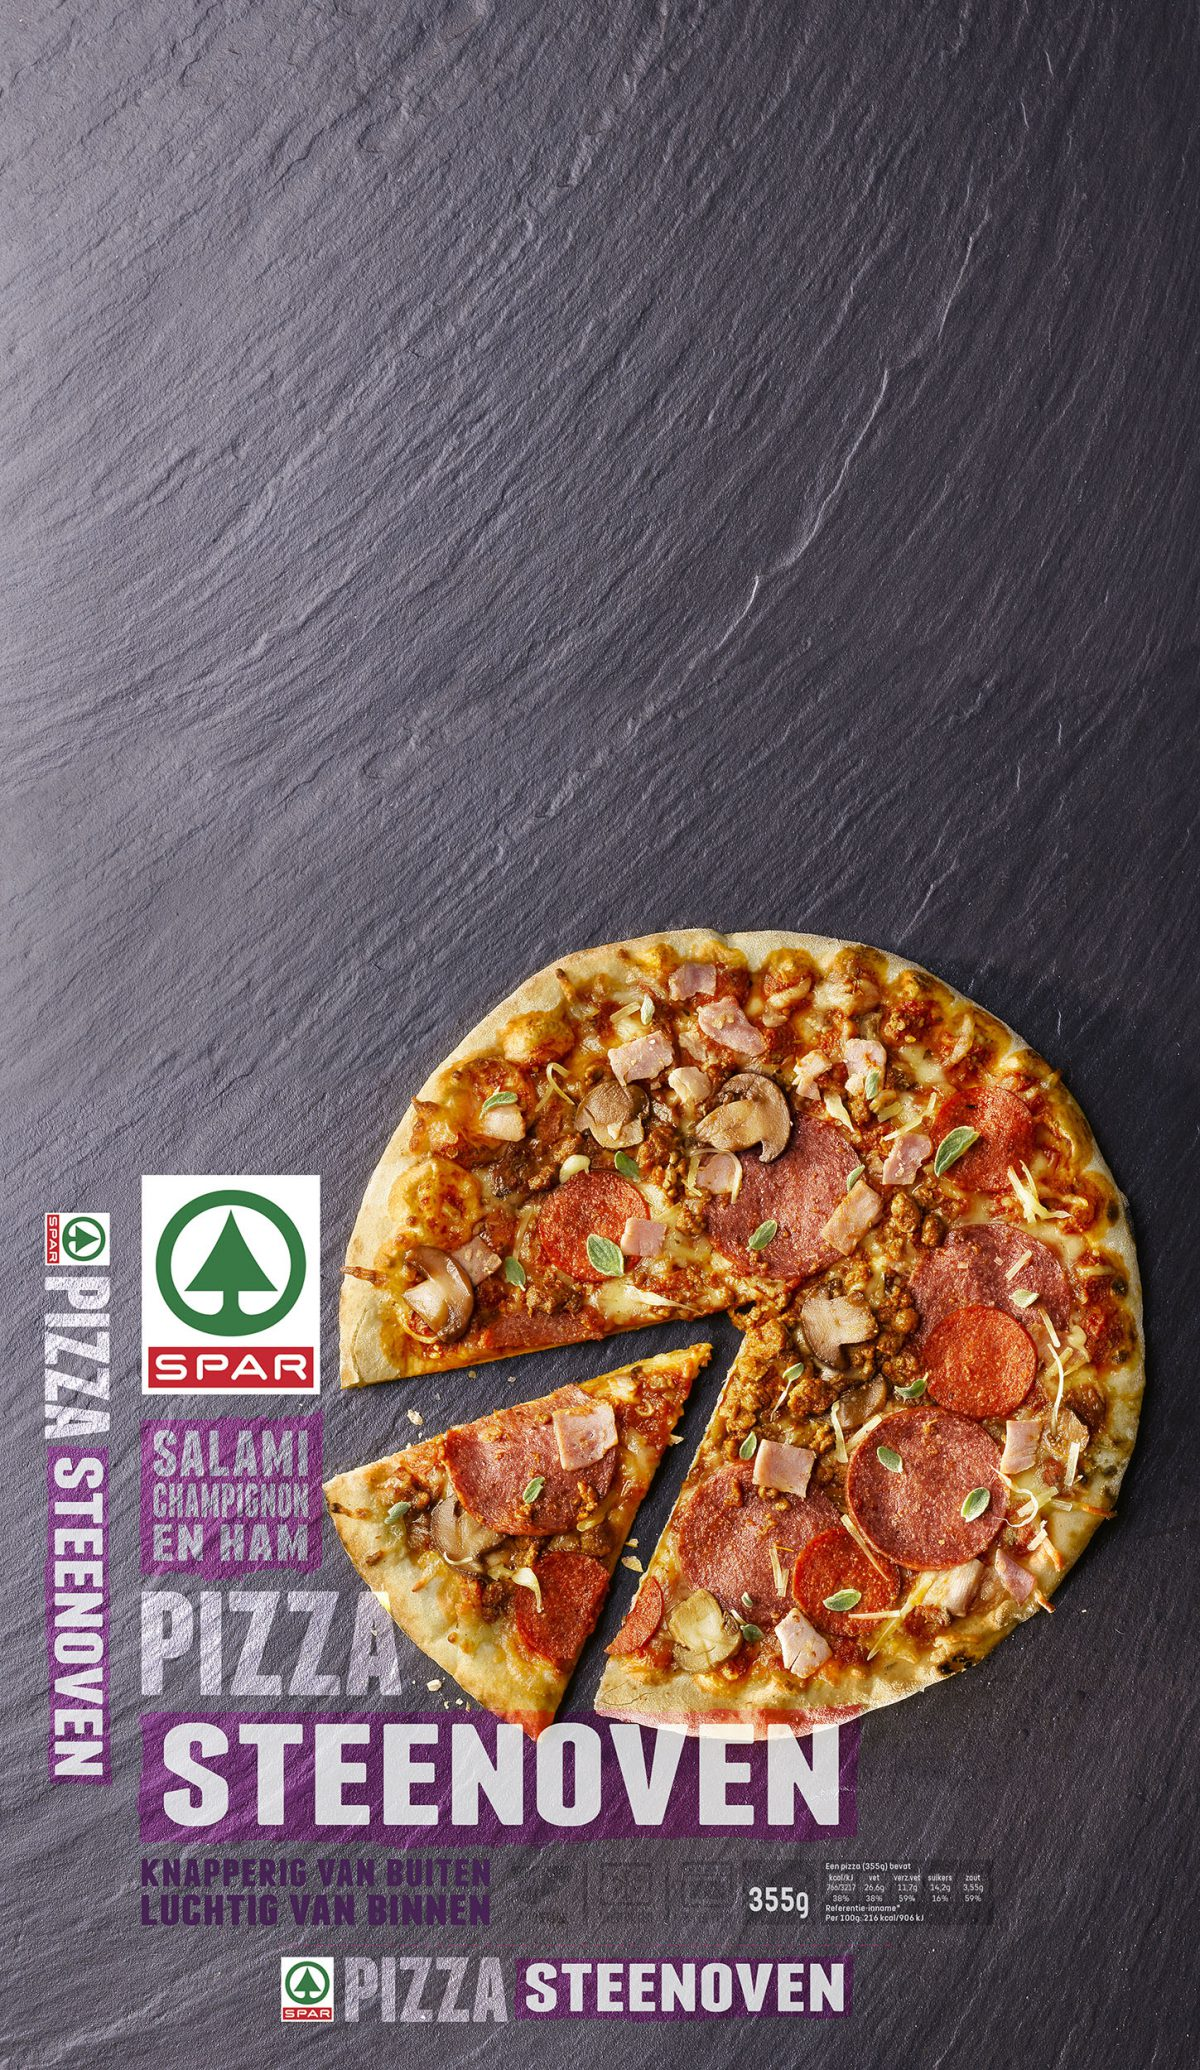 Pizza-Speciaal-Steenoven